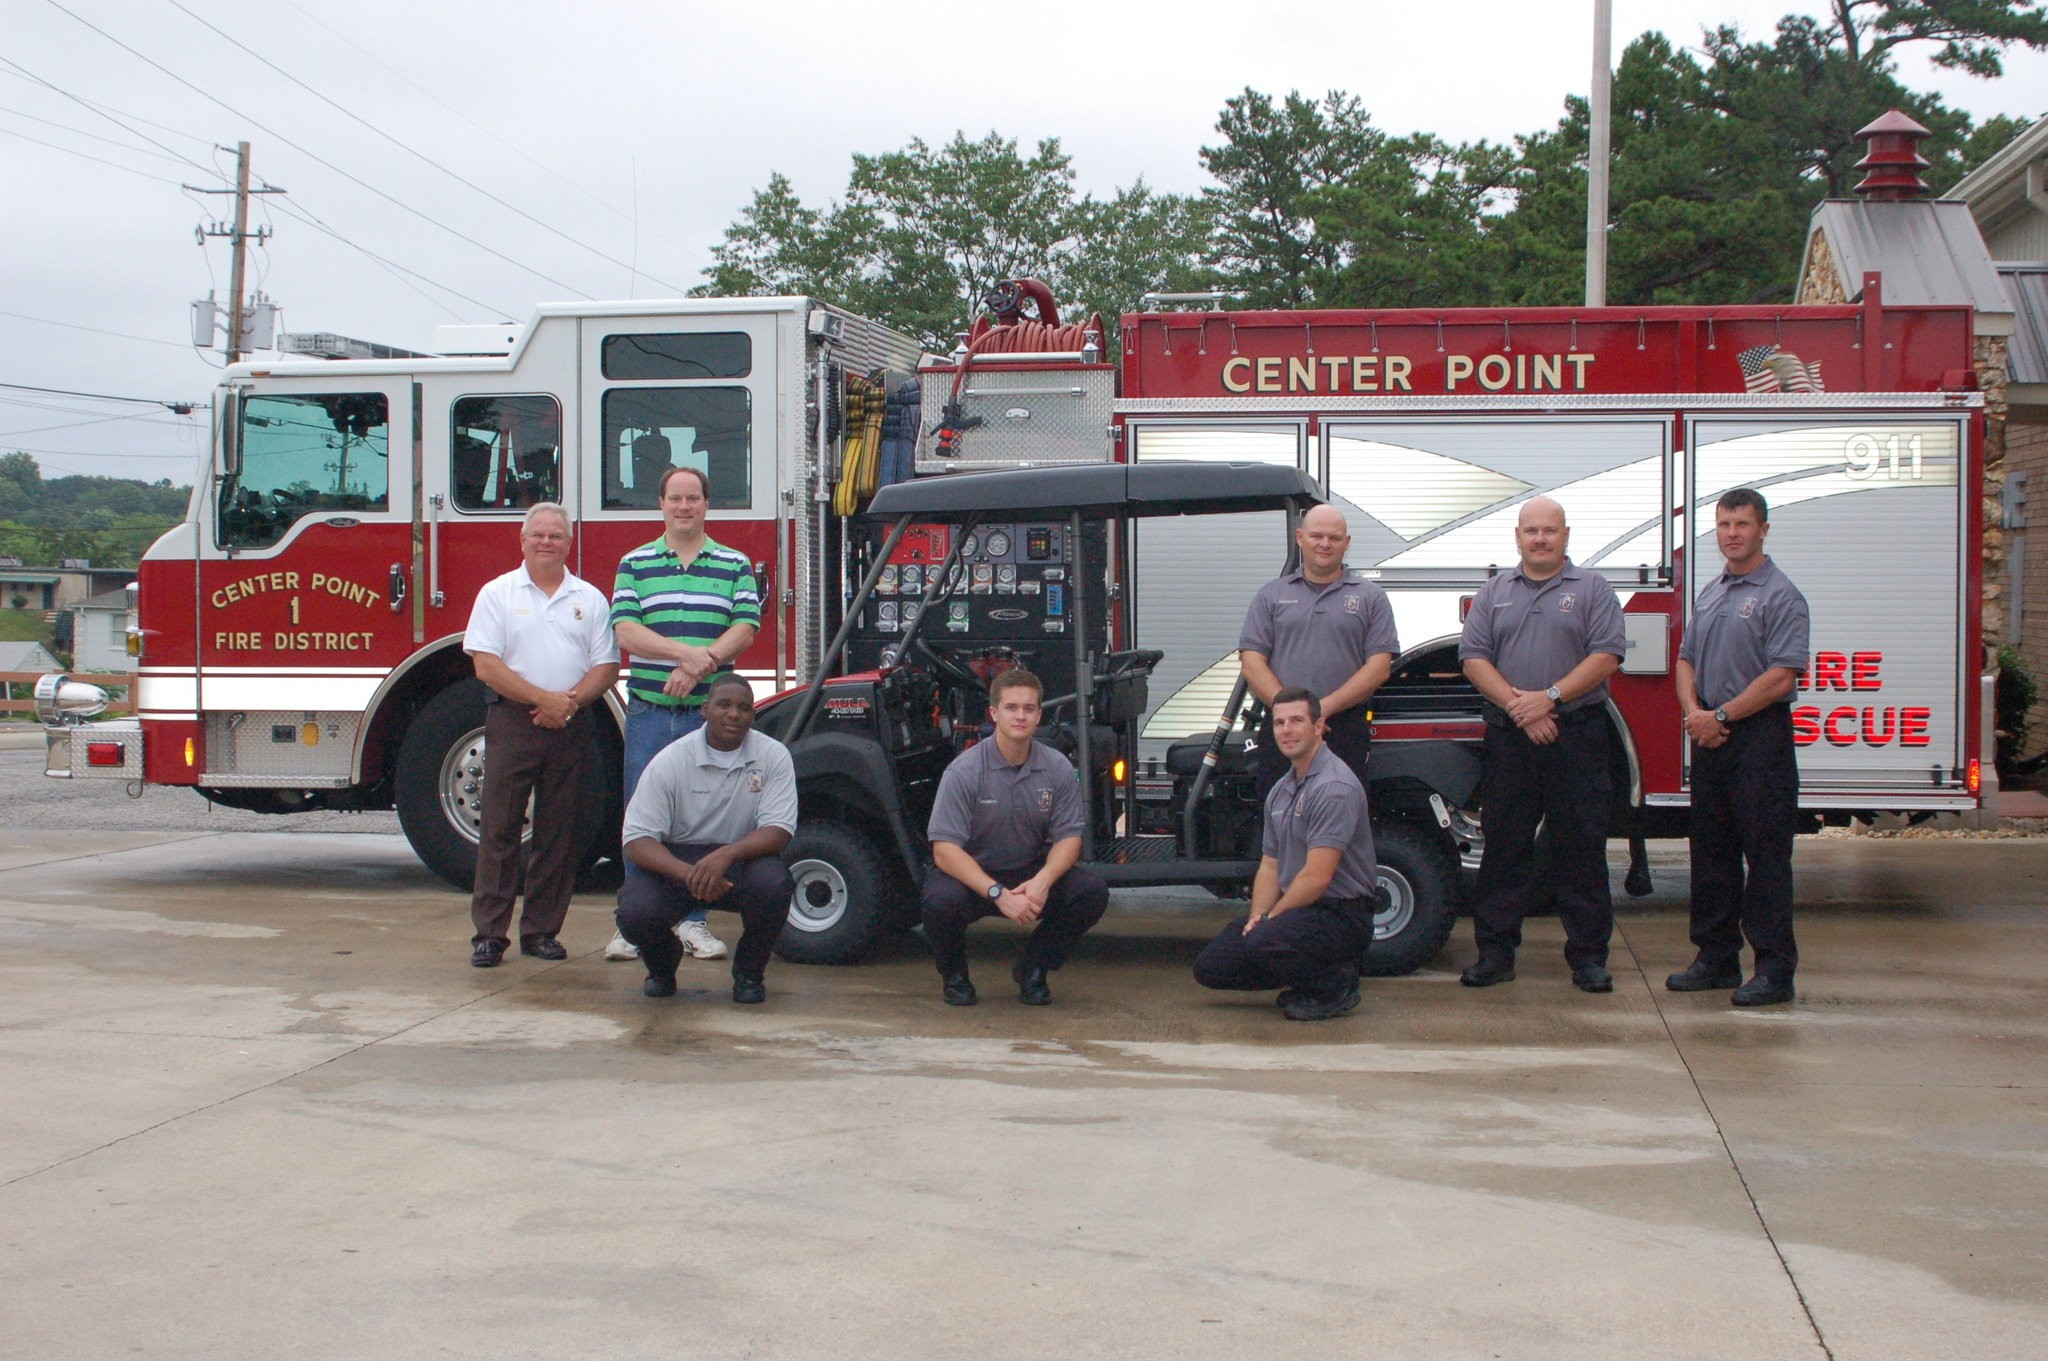 Center Point Fire District Gets Kawasaki Trans Mule To Help